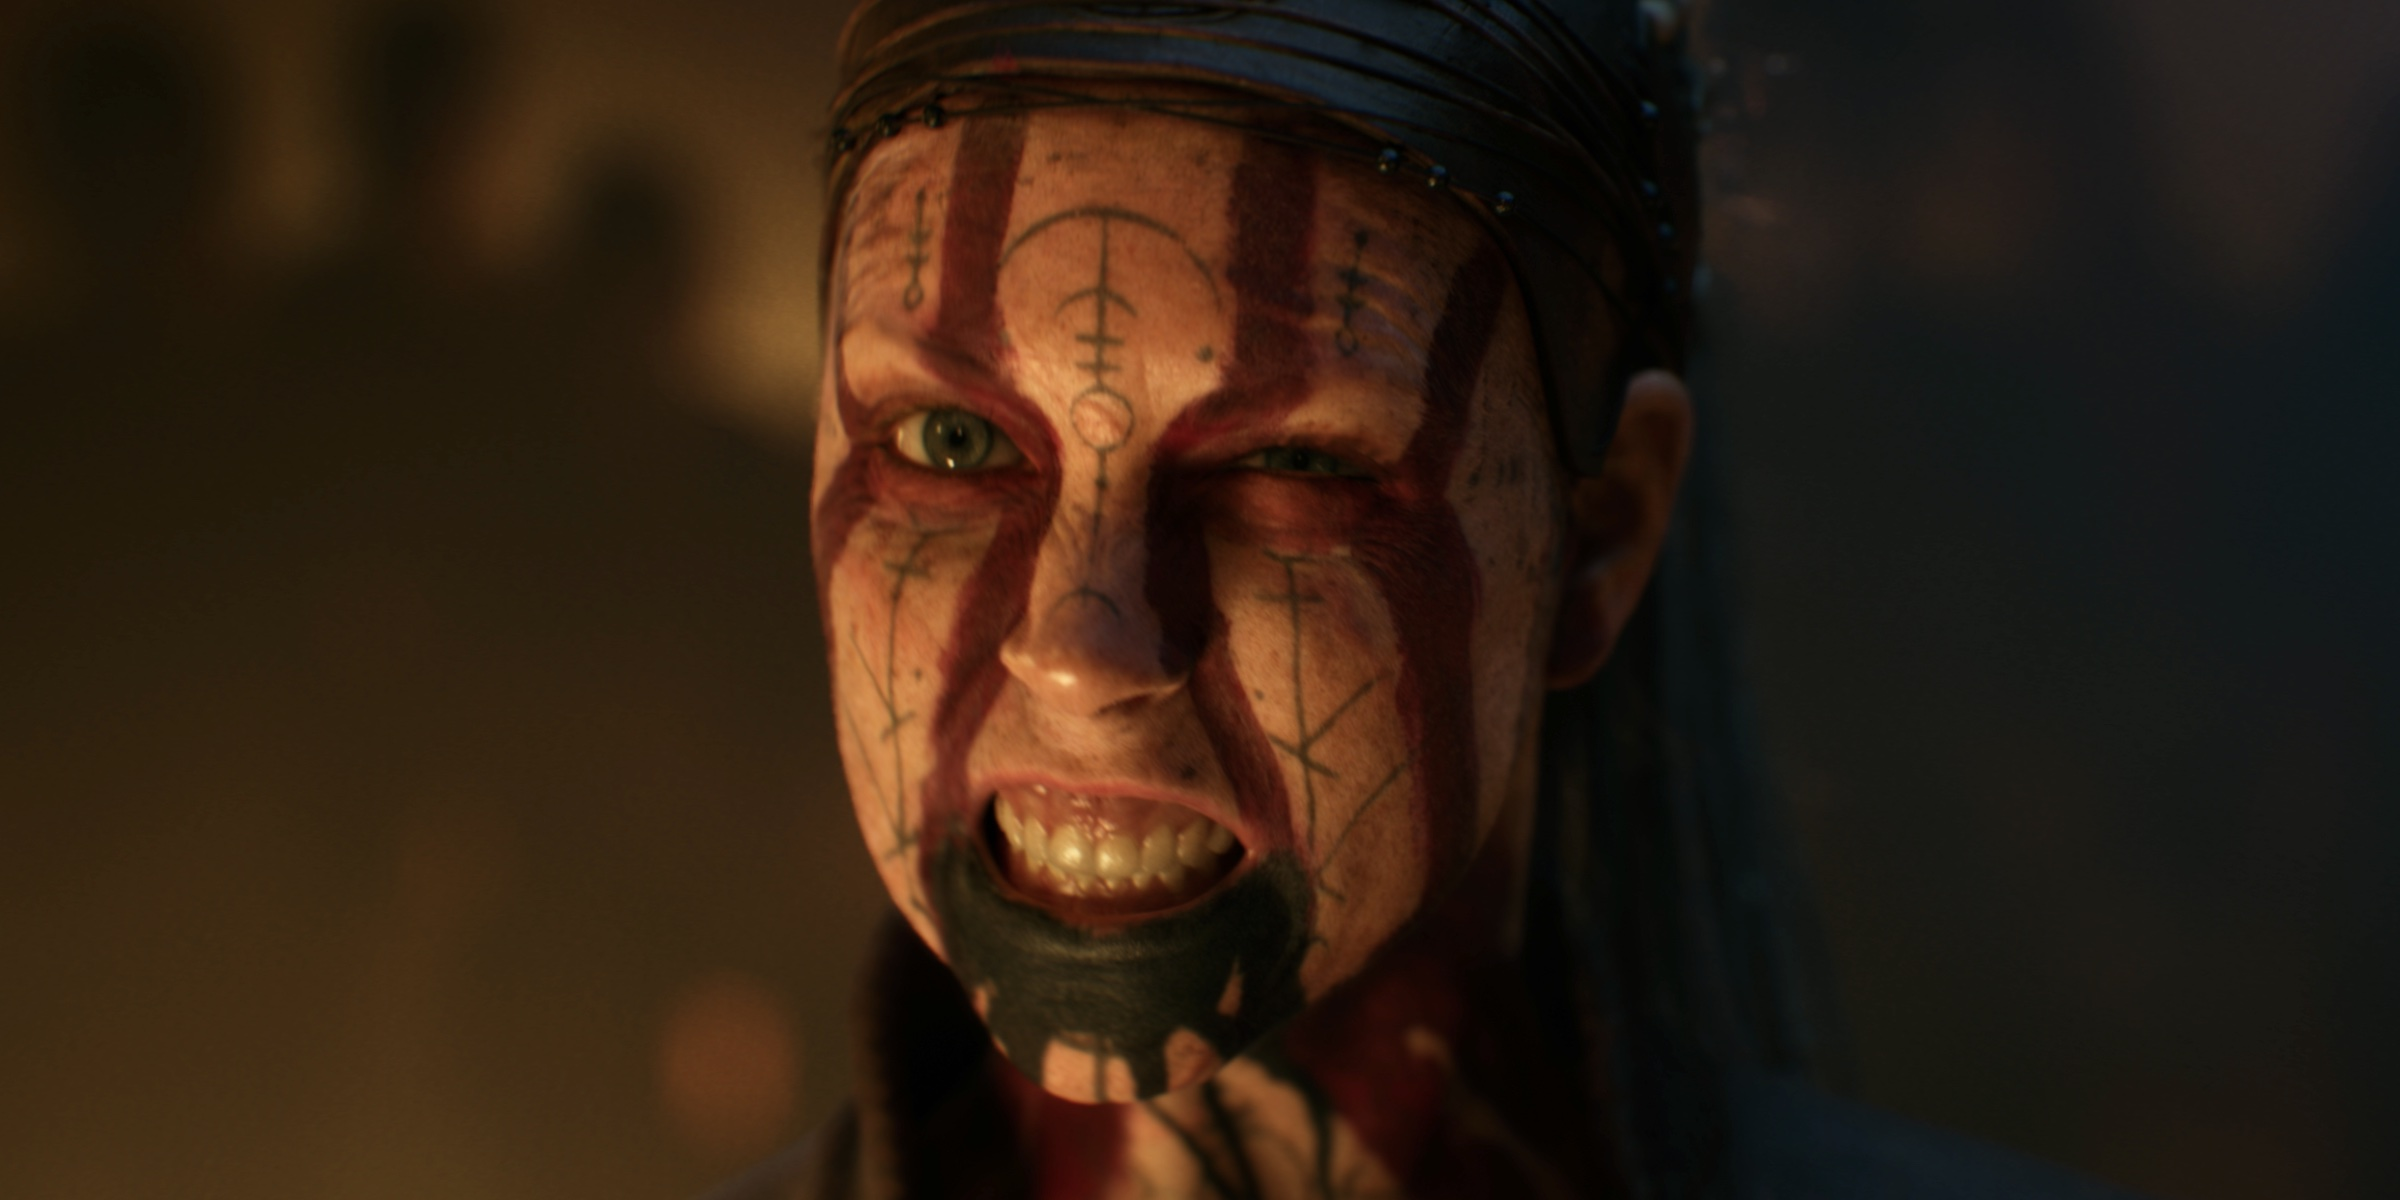 Senua gives a growl in a still from Senua's Saga: Hellblade 2's debut cinematic trailer